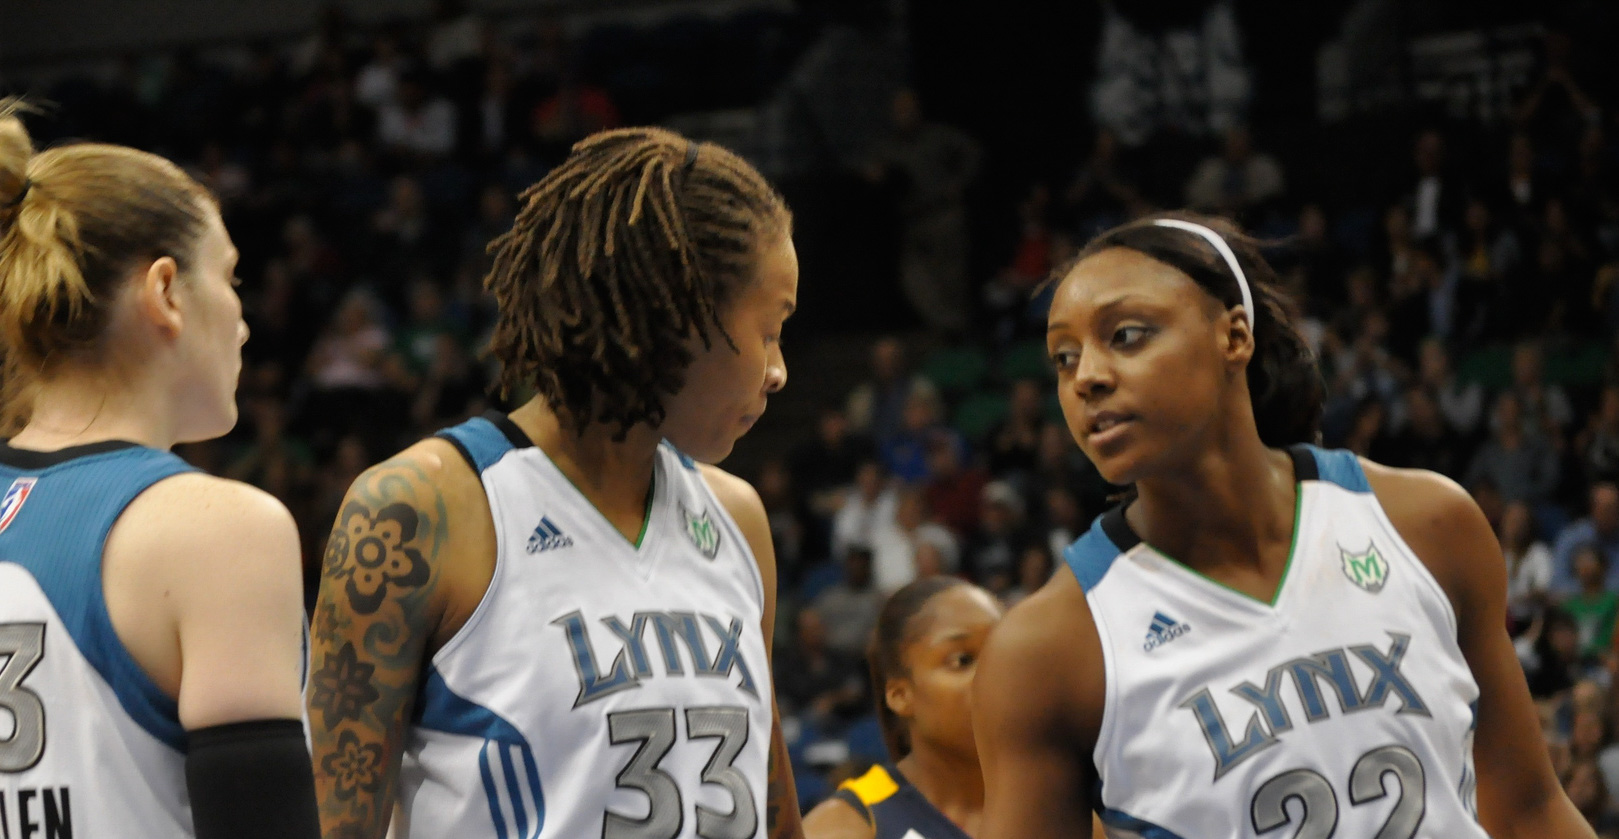 The Lynx are the only Minnesota professional sports team to win a championship since the early 90s. (Photo: Flickr/Joe Bielawa)